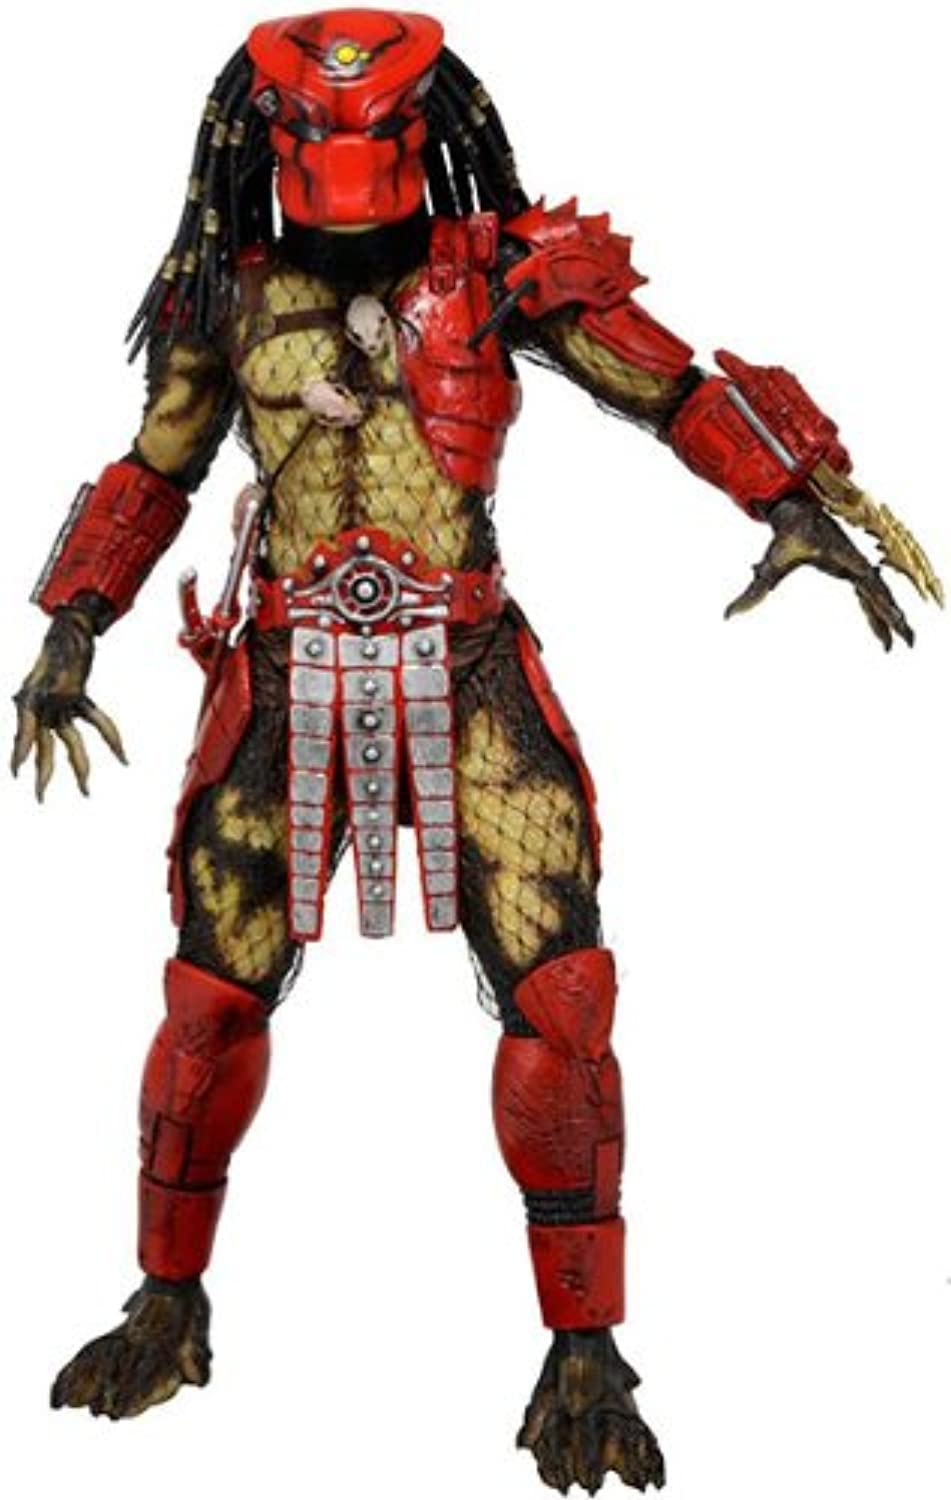 Neca Predators 7 Inch Series 7  Big Red Predator Action Figure